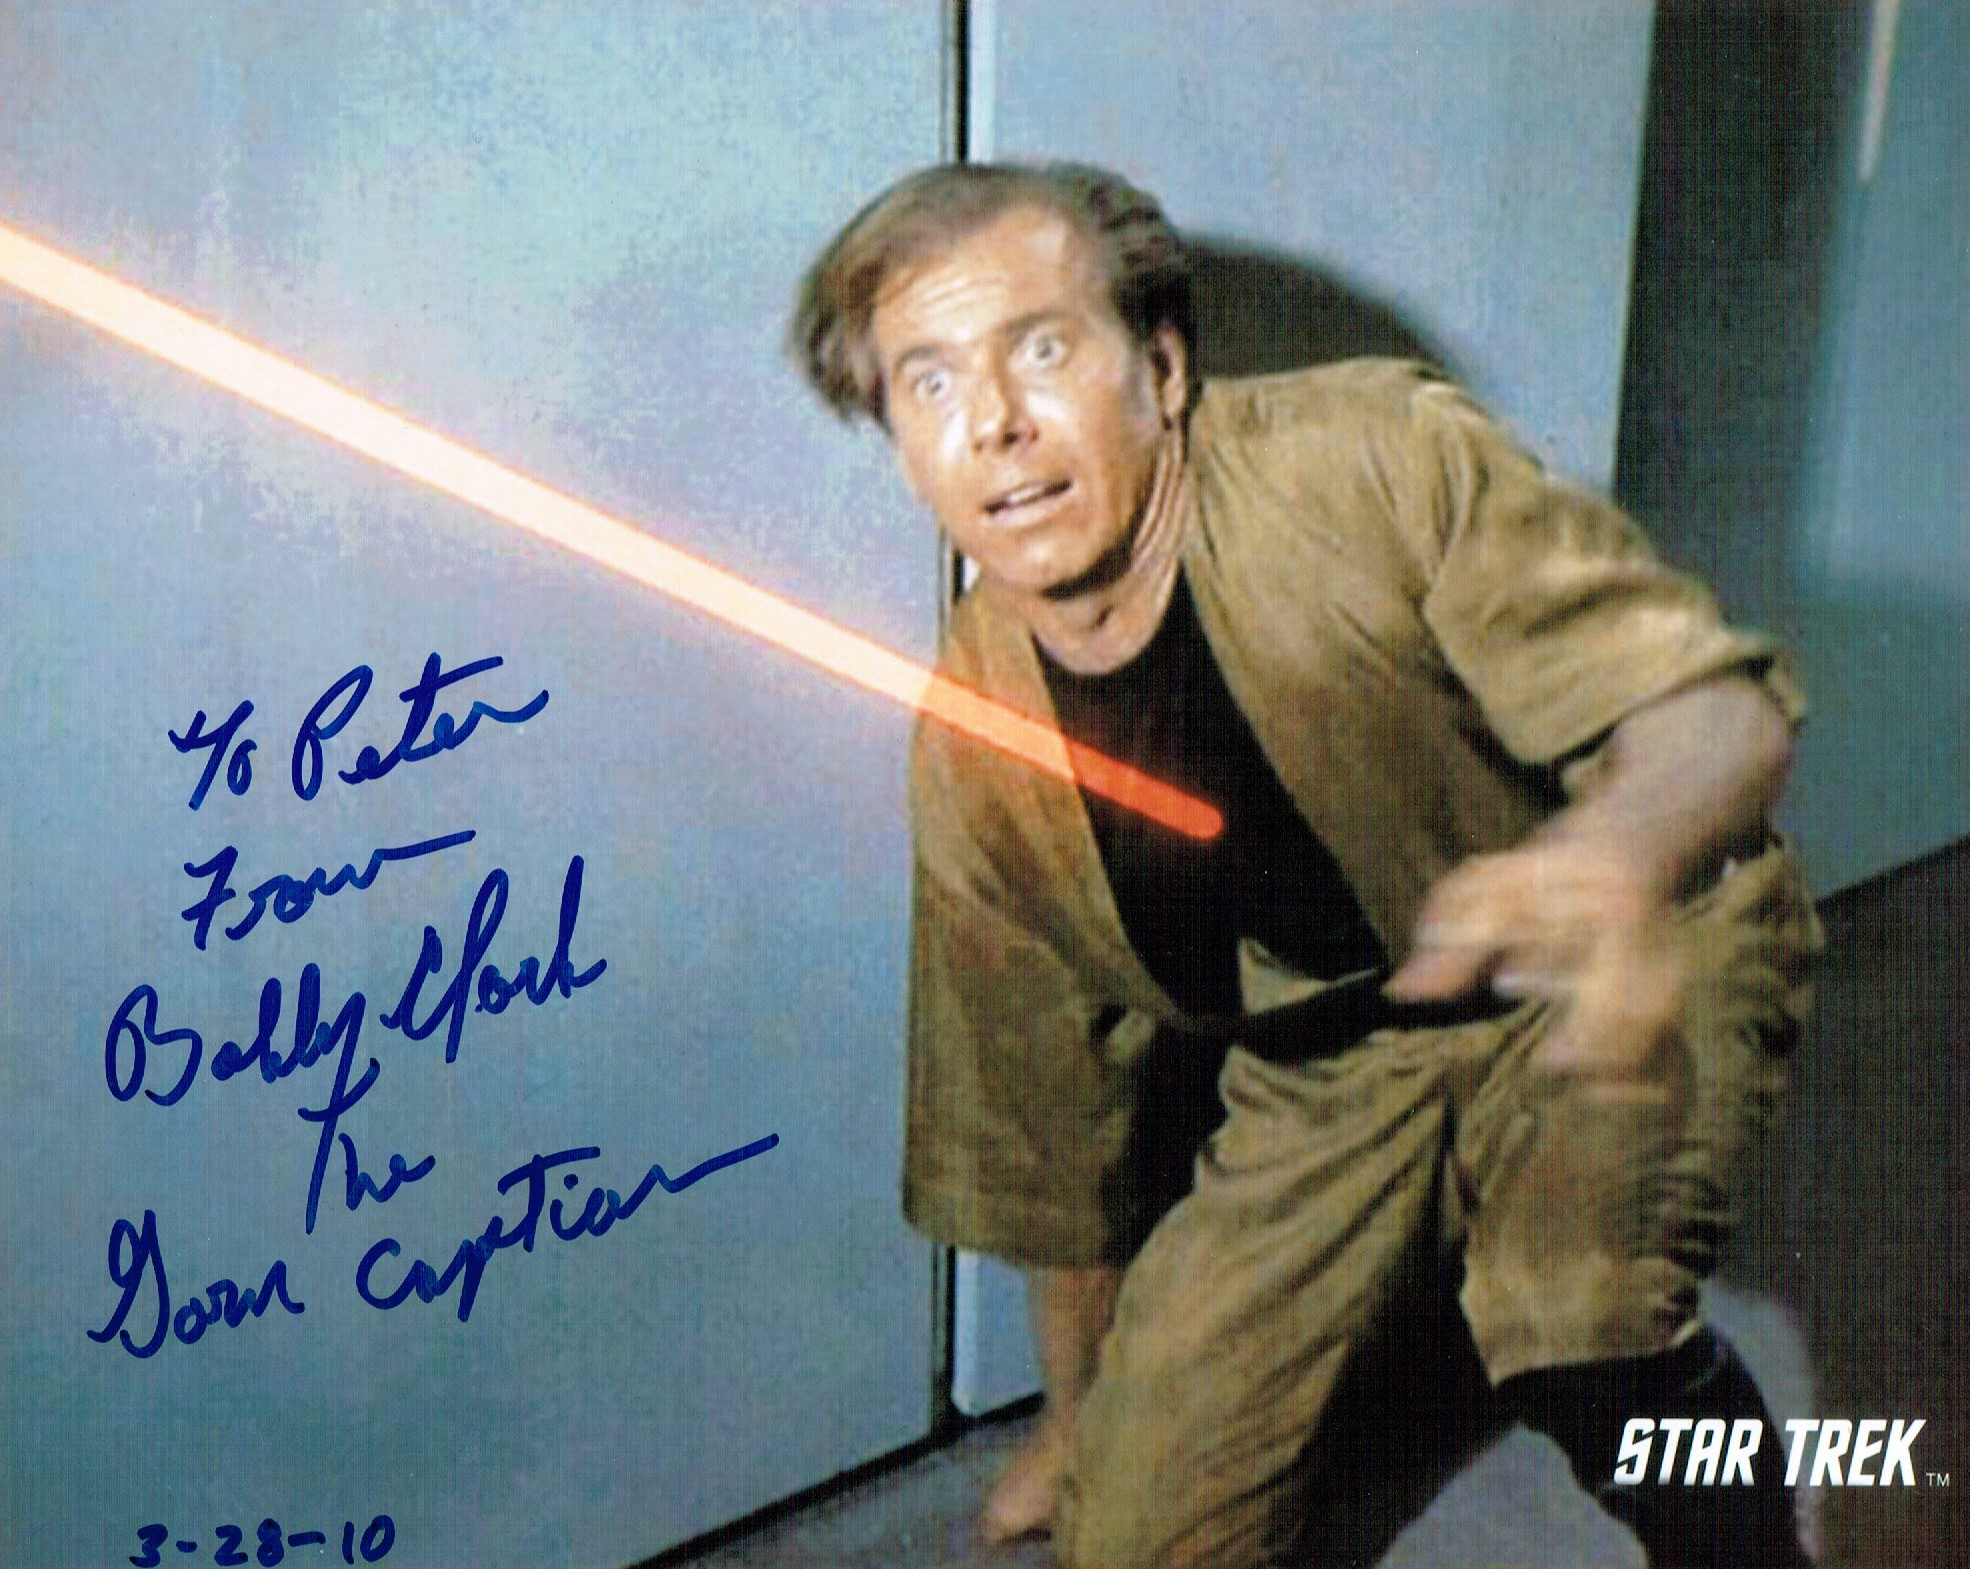 An 8x10 image from the Star Trek episode Mirror Mirror, showing Bobby Clark being hit by a phaser beam, and signed by Clark.